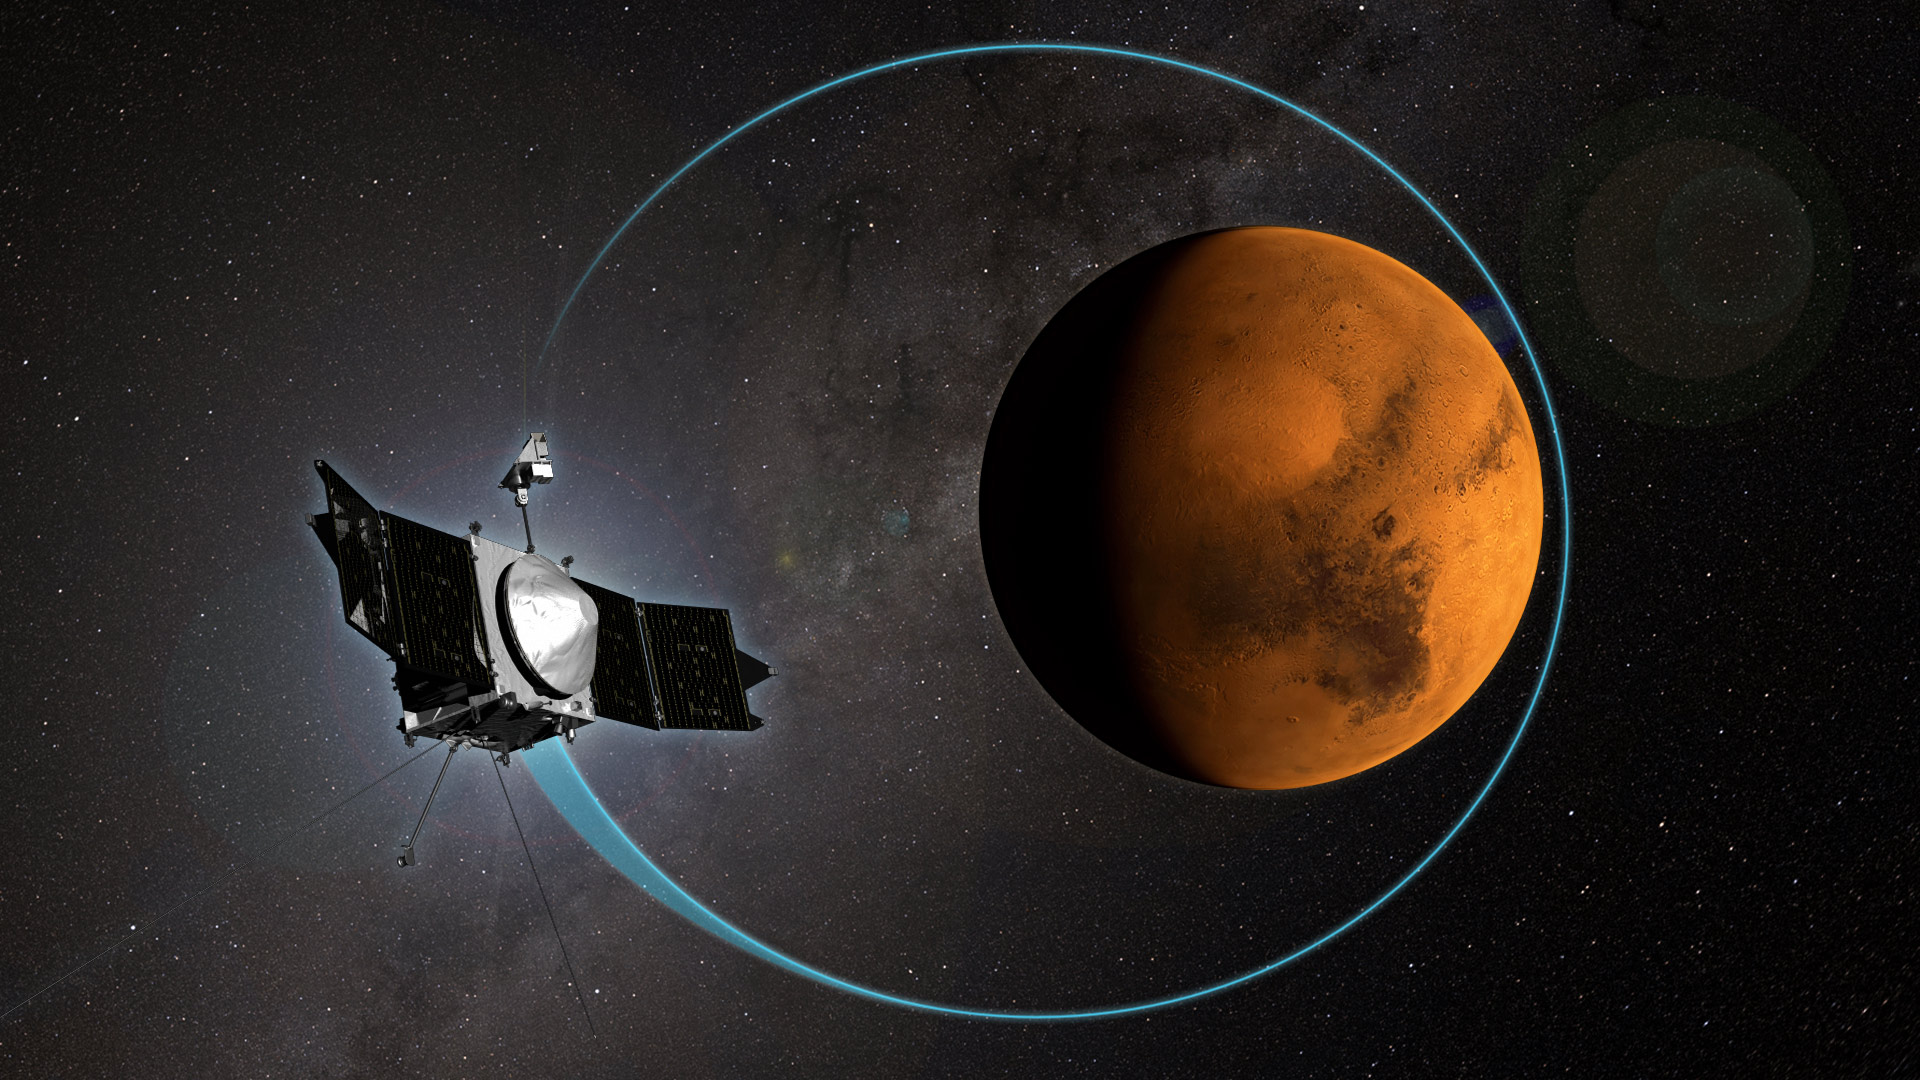 maven nasa - photo #11